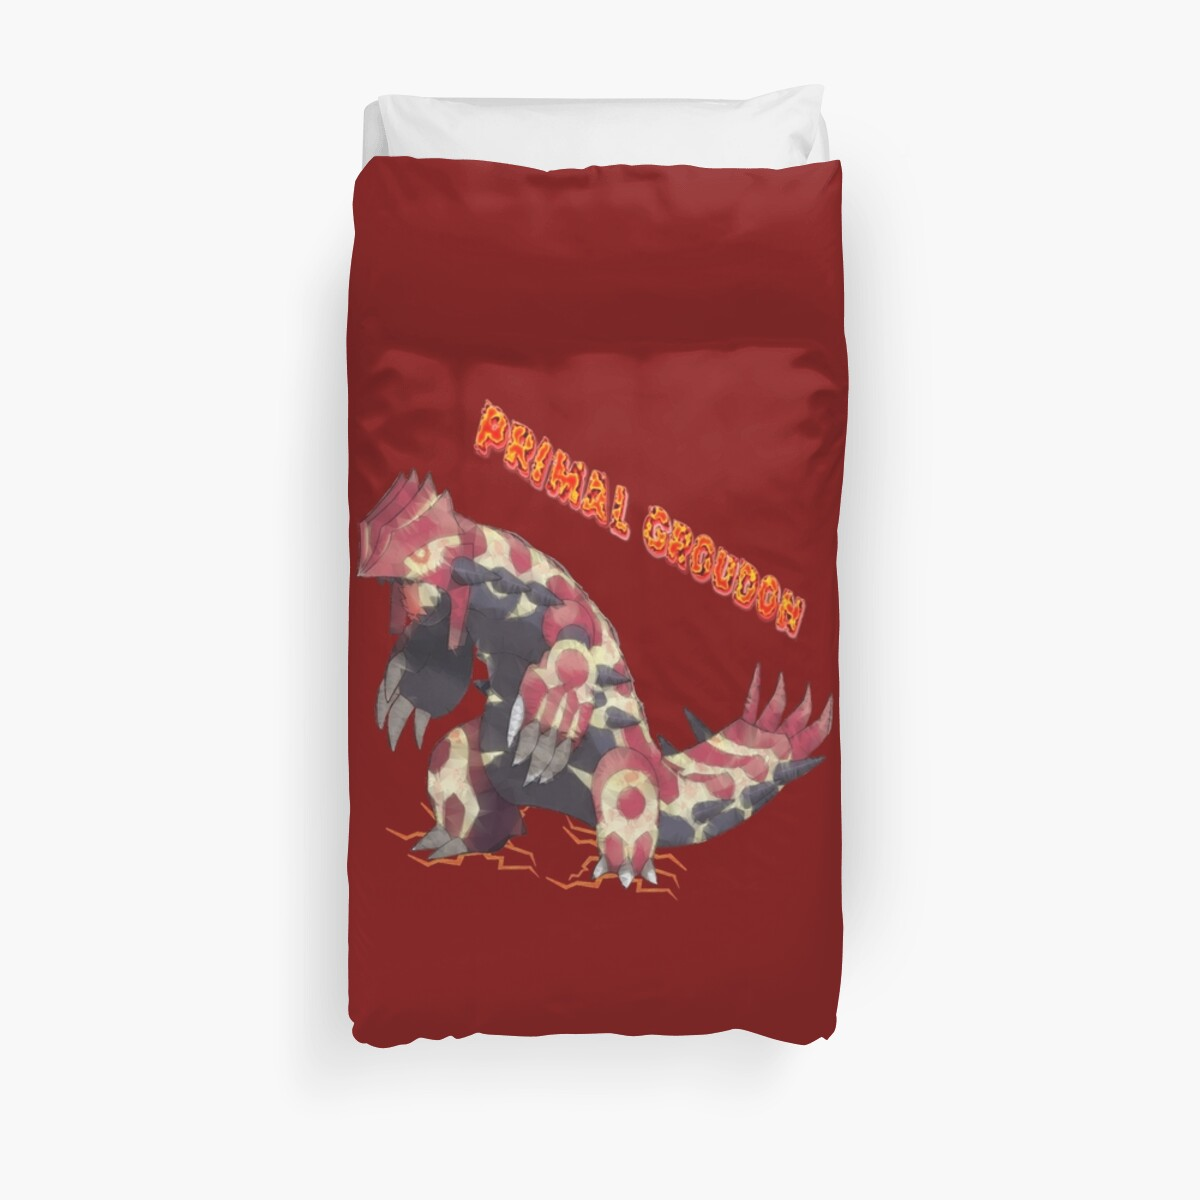 Quot Primal Groudon Pokemon Omega Ruby Quot Duvet Covers By